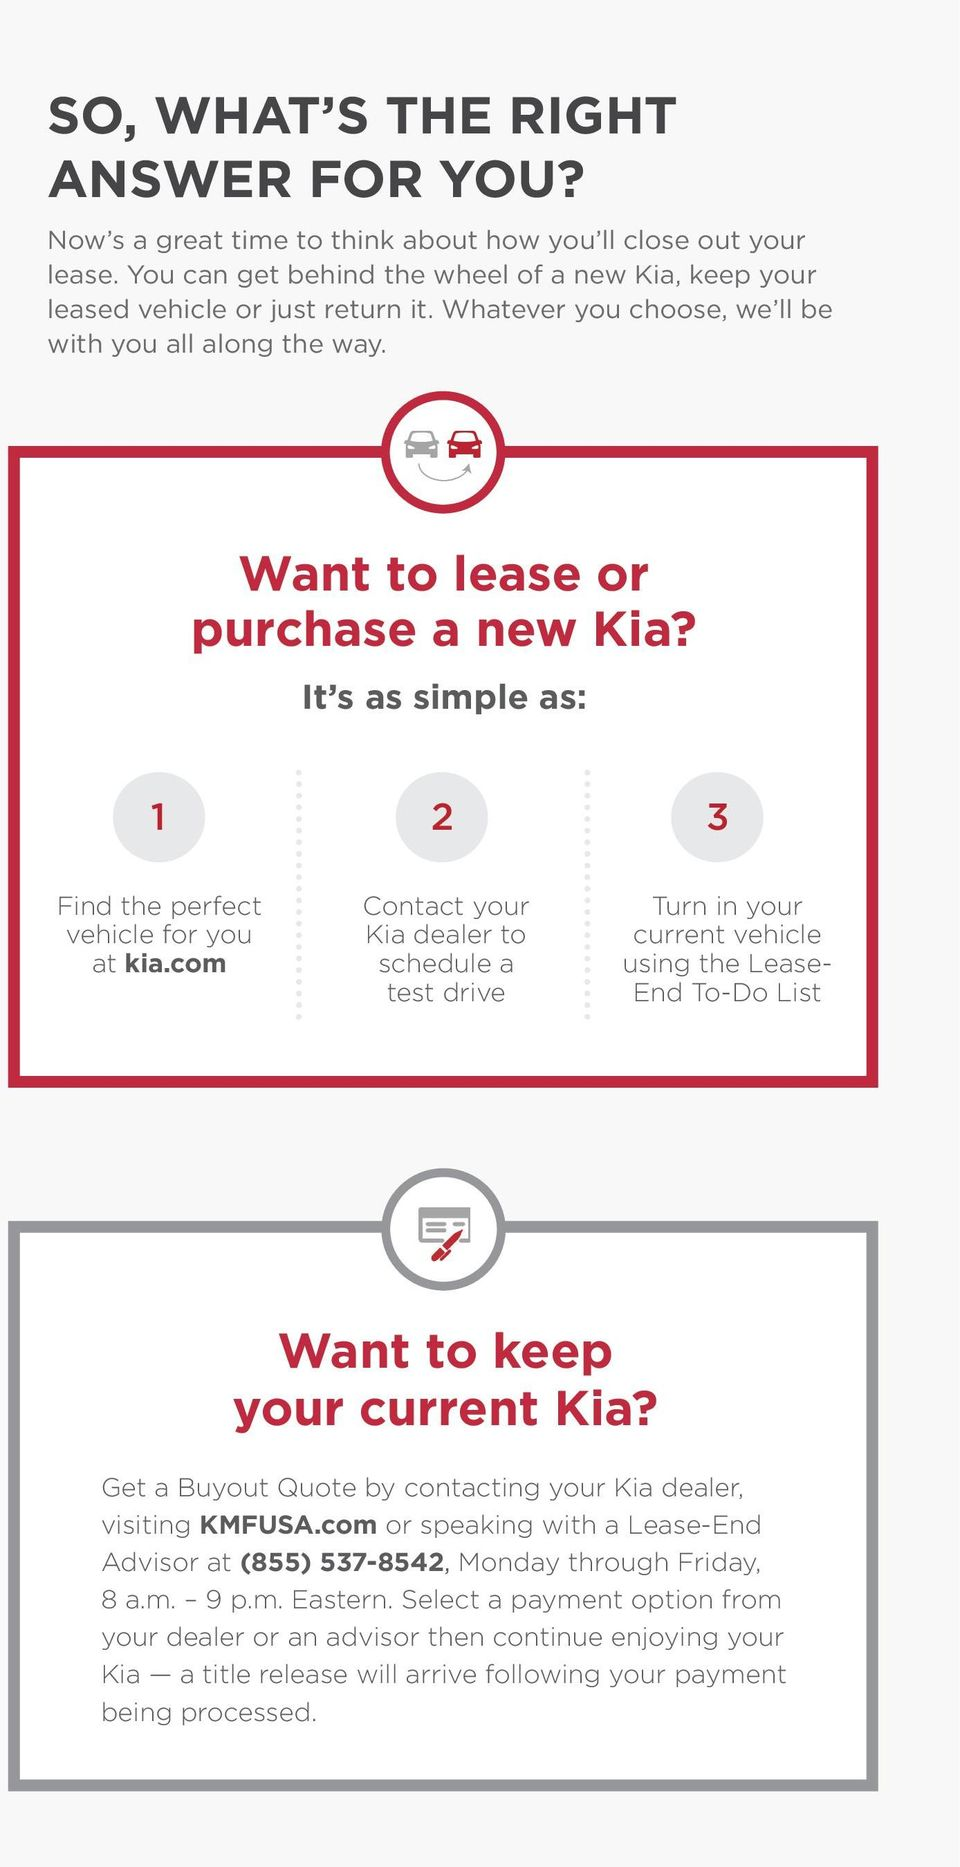 com Contact your Kia dealer to schedule a test drive Turn in your current vehicle using the Lease- End To-Do List Want to keep your current Kia?